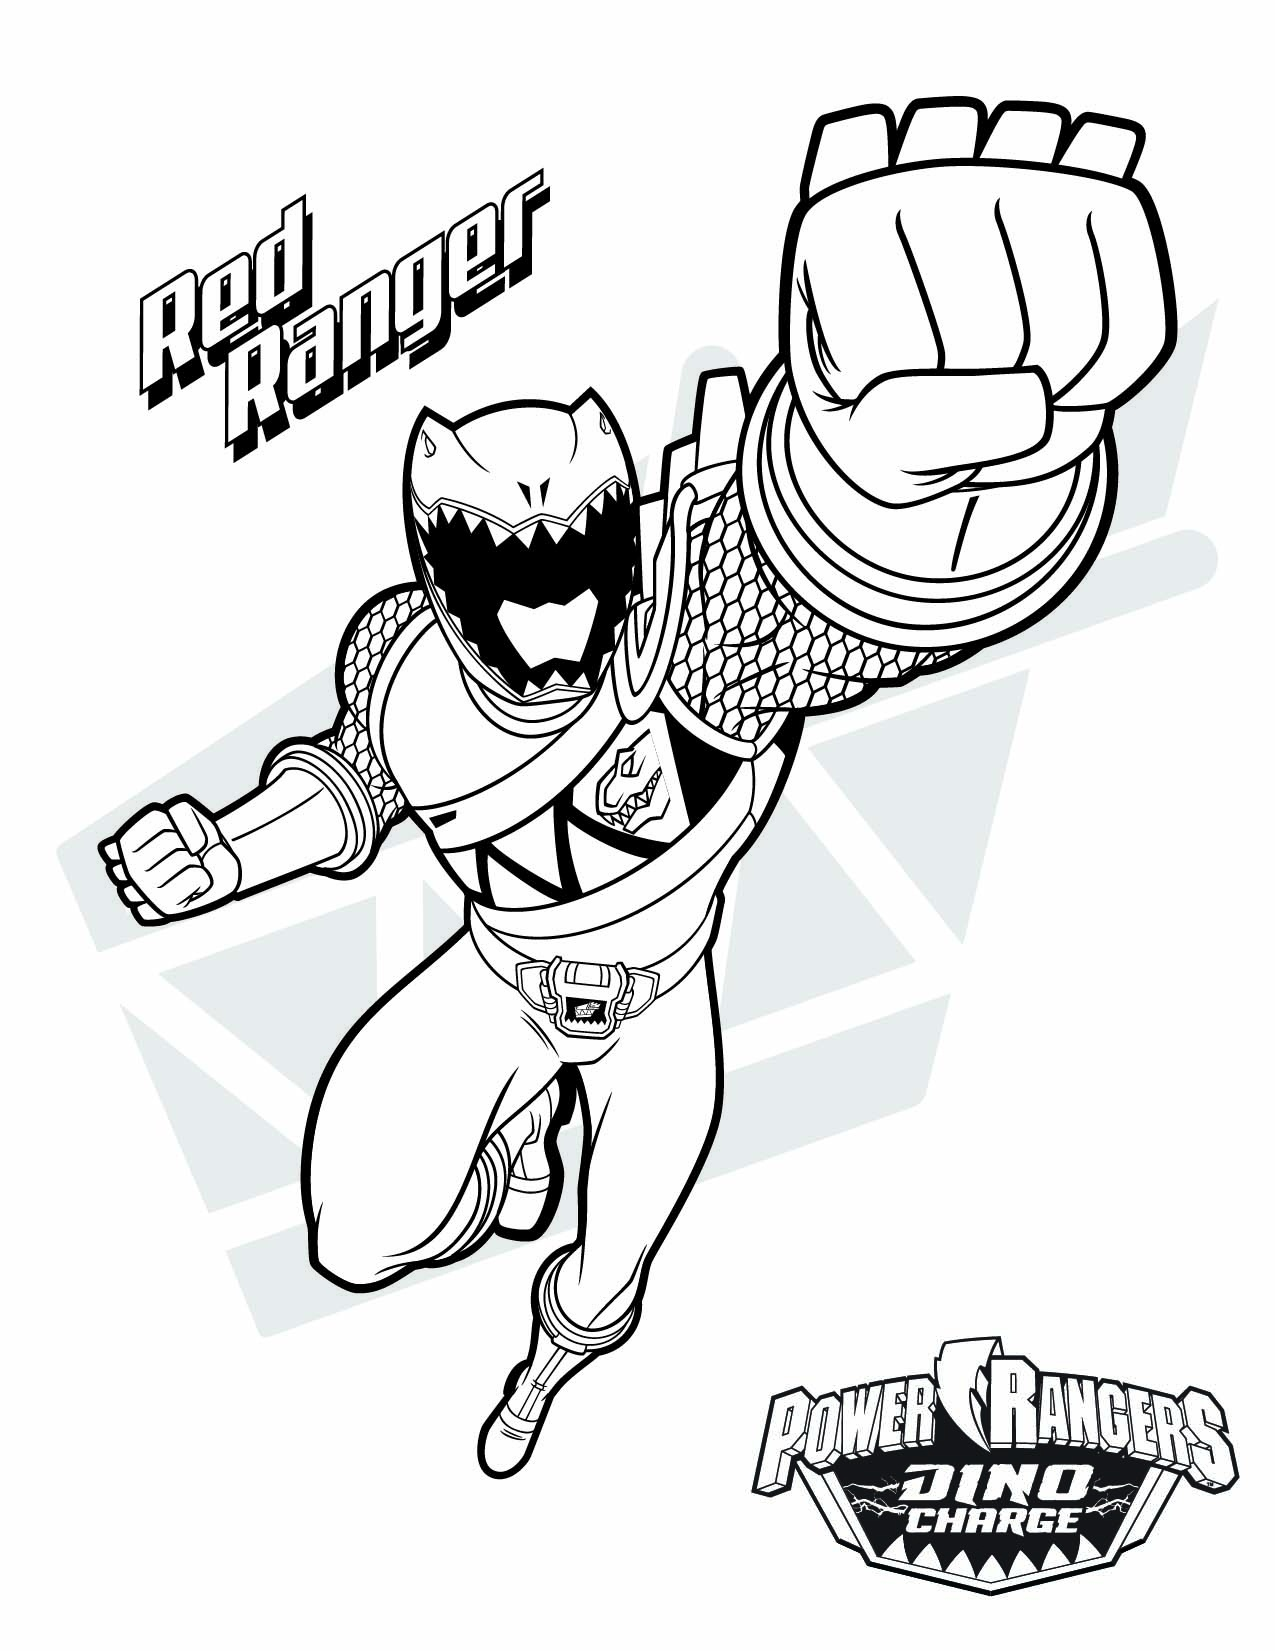 Power Rangers Dino Charge Gold Ranger Coloring Pages Free - Free Power Ranger Printables